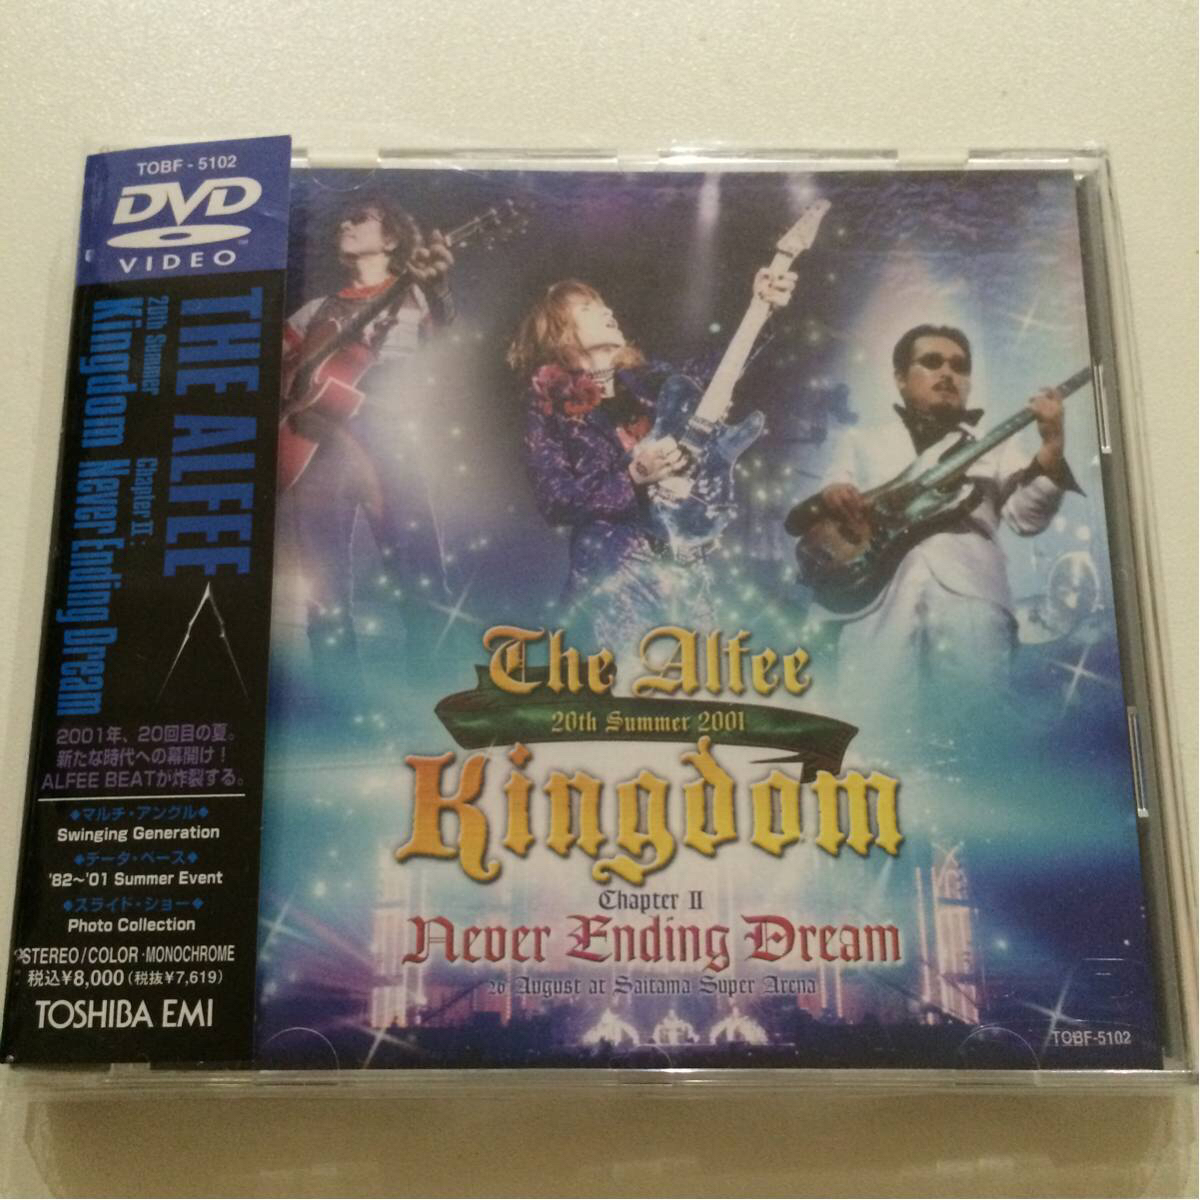 DVD★THE ALFEE 20th Summer 2001 Kingdom Chapter Ⅱ Never Ending Dream 26 August at Saitama Super Arena アルフィー 高見沢桜井坂崎